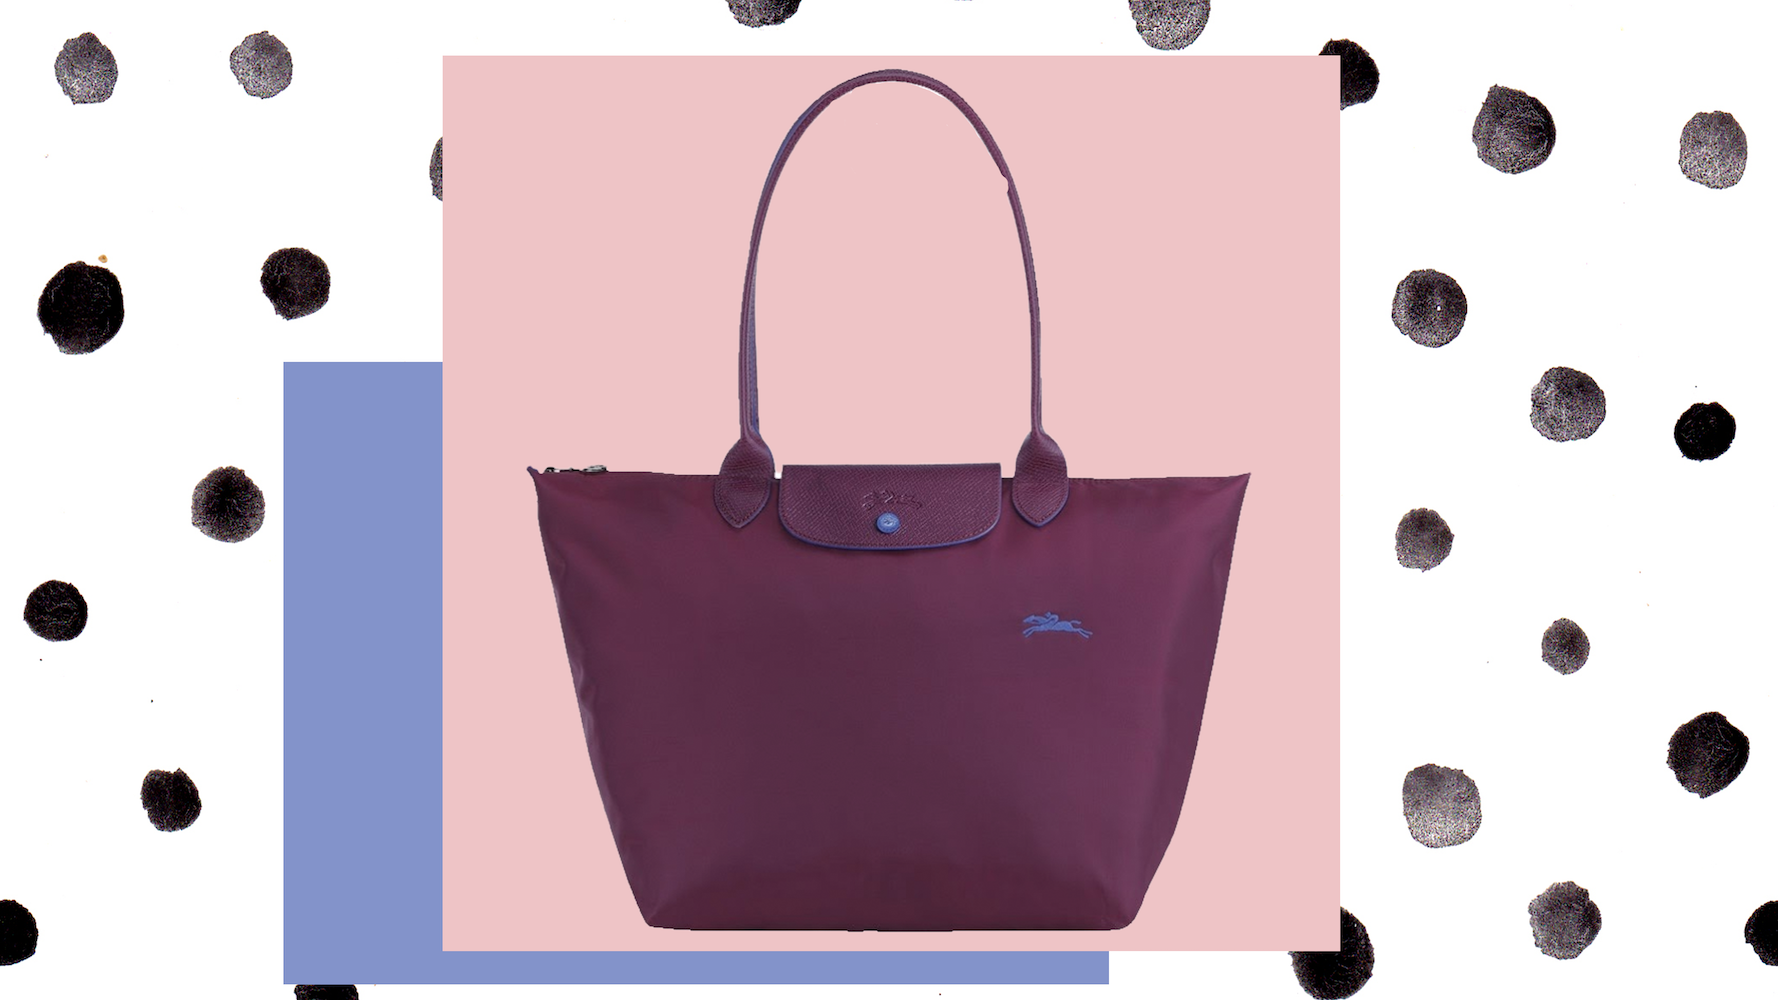 Longchamp bag: Get the Le Pliage Club tote and more for 40 to 60% off